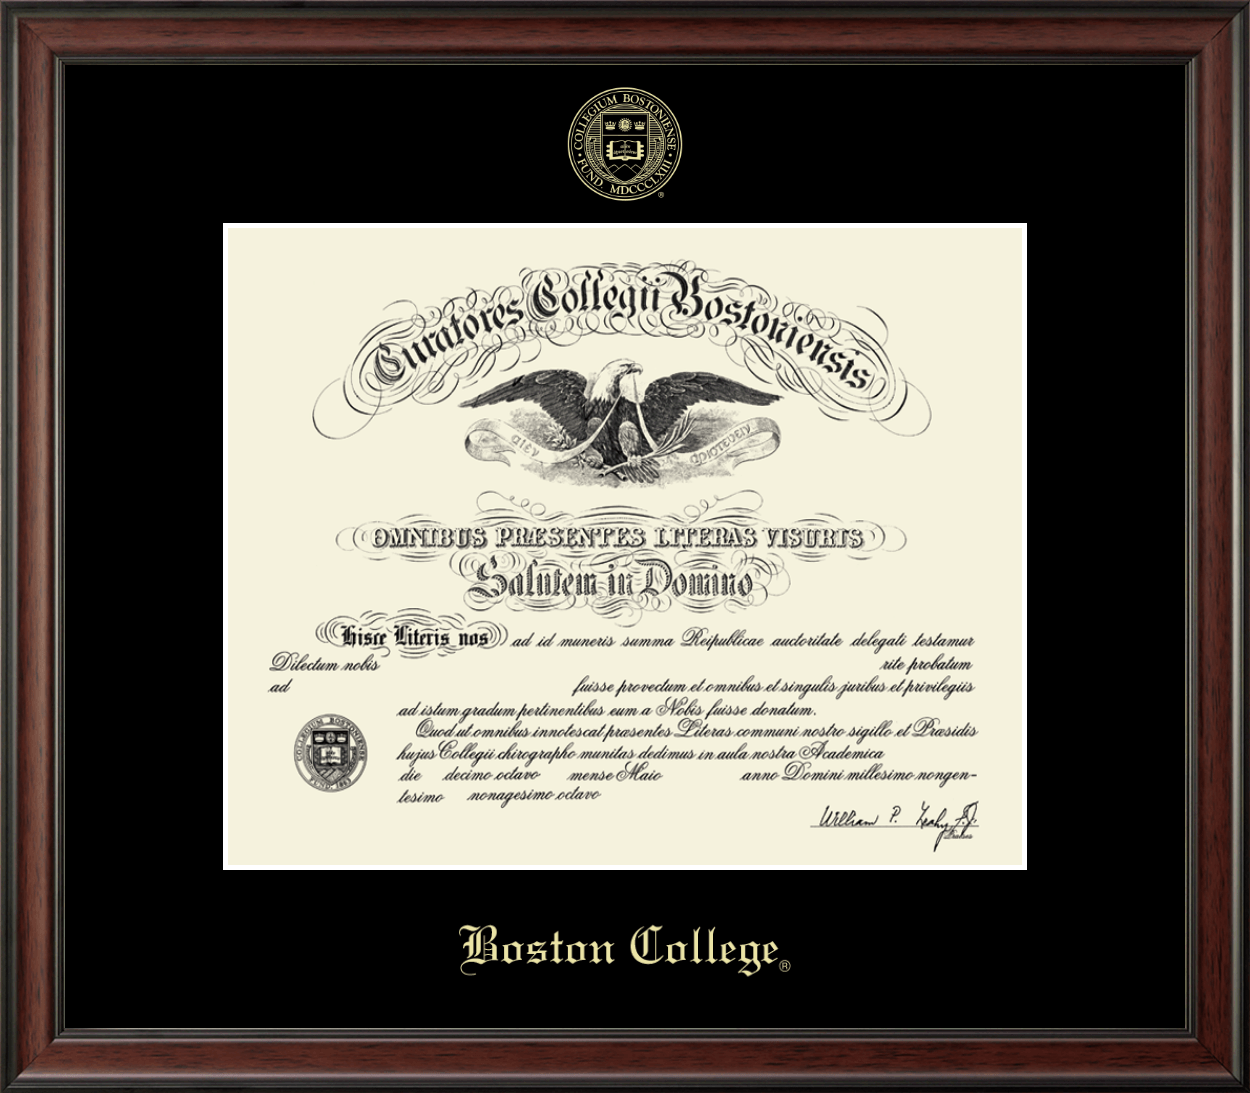 Boston College diploma frame lithograph campus image Boston case certificate degree frames framing gift graduation plaque college holder